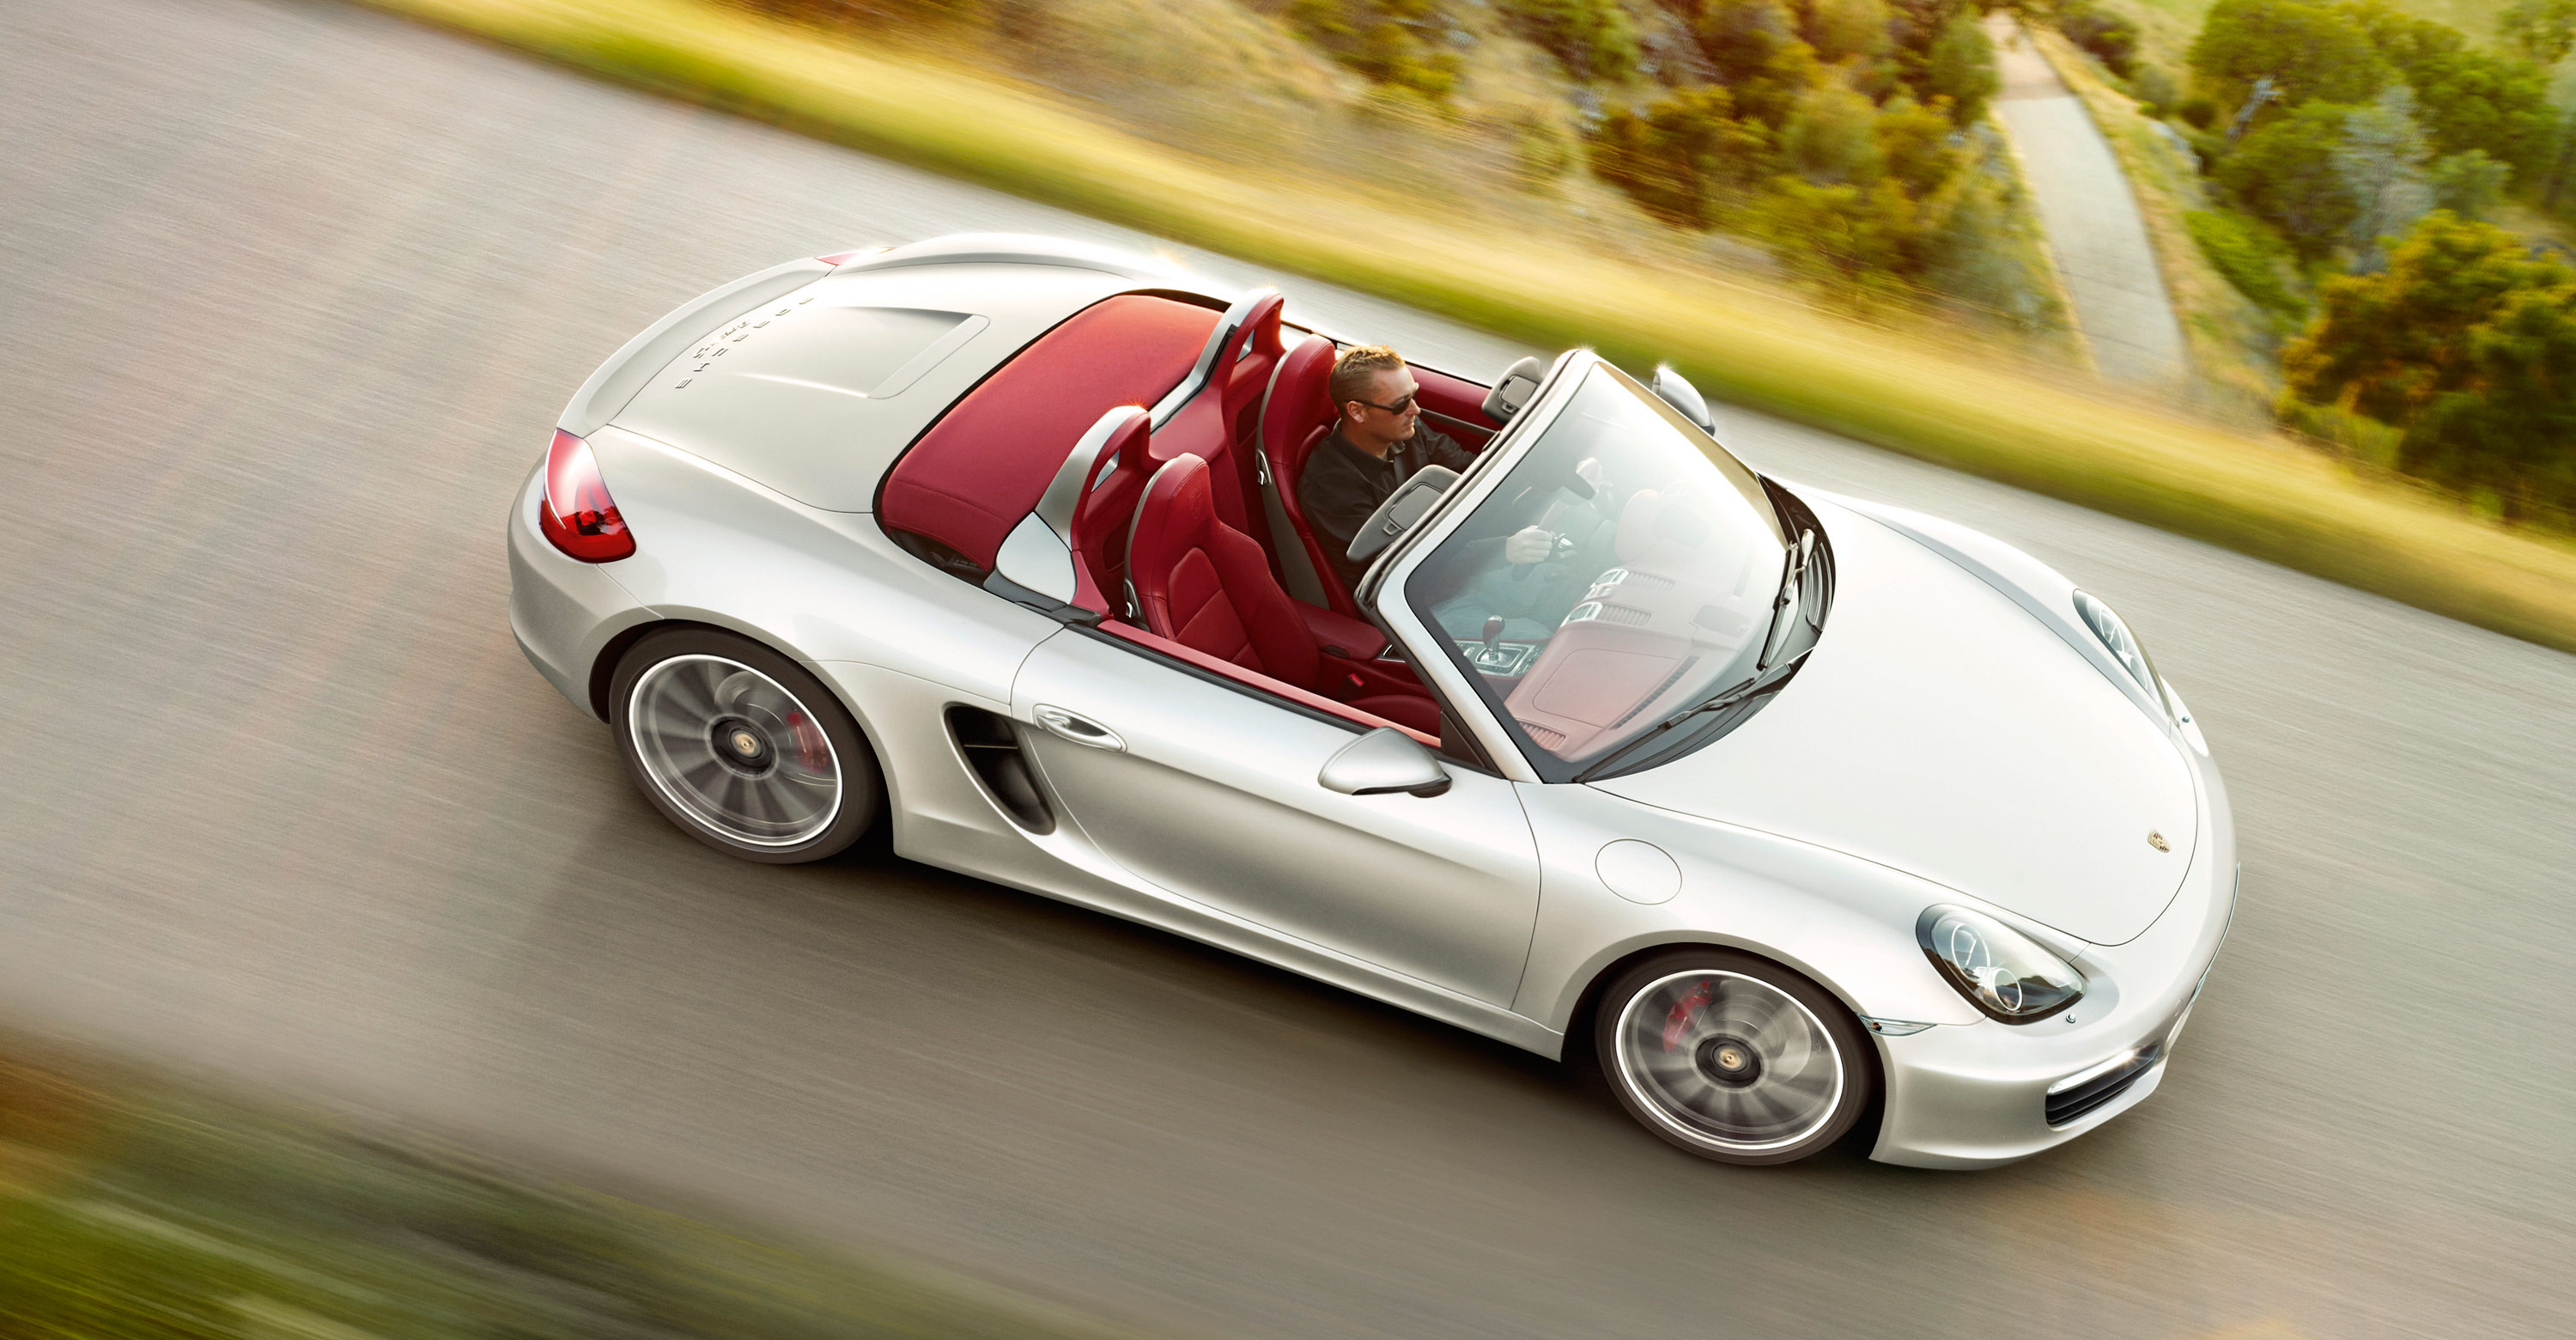 2012 Porsche Boxster S - Top side view